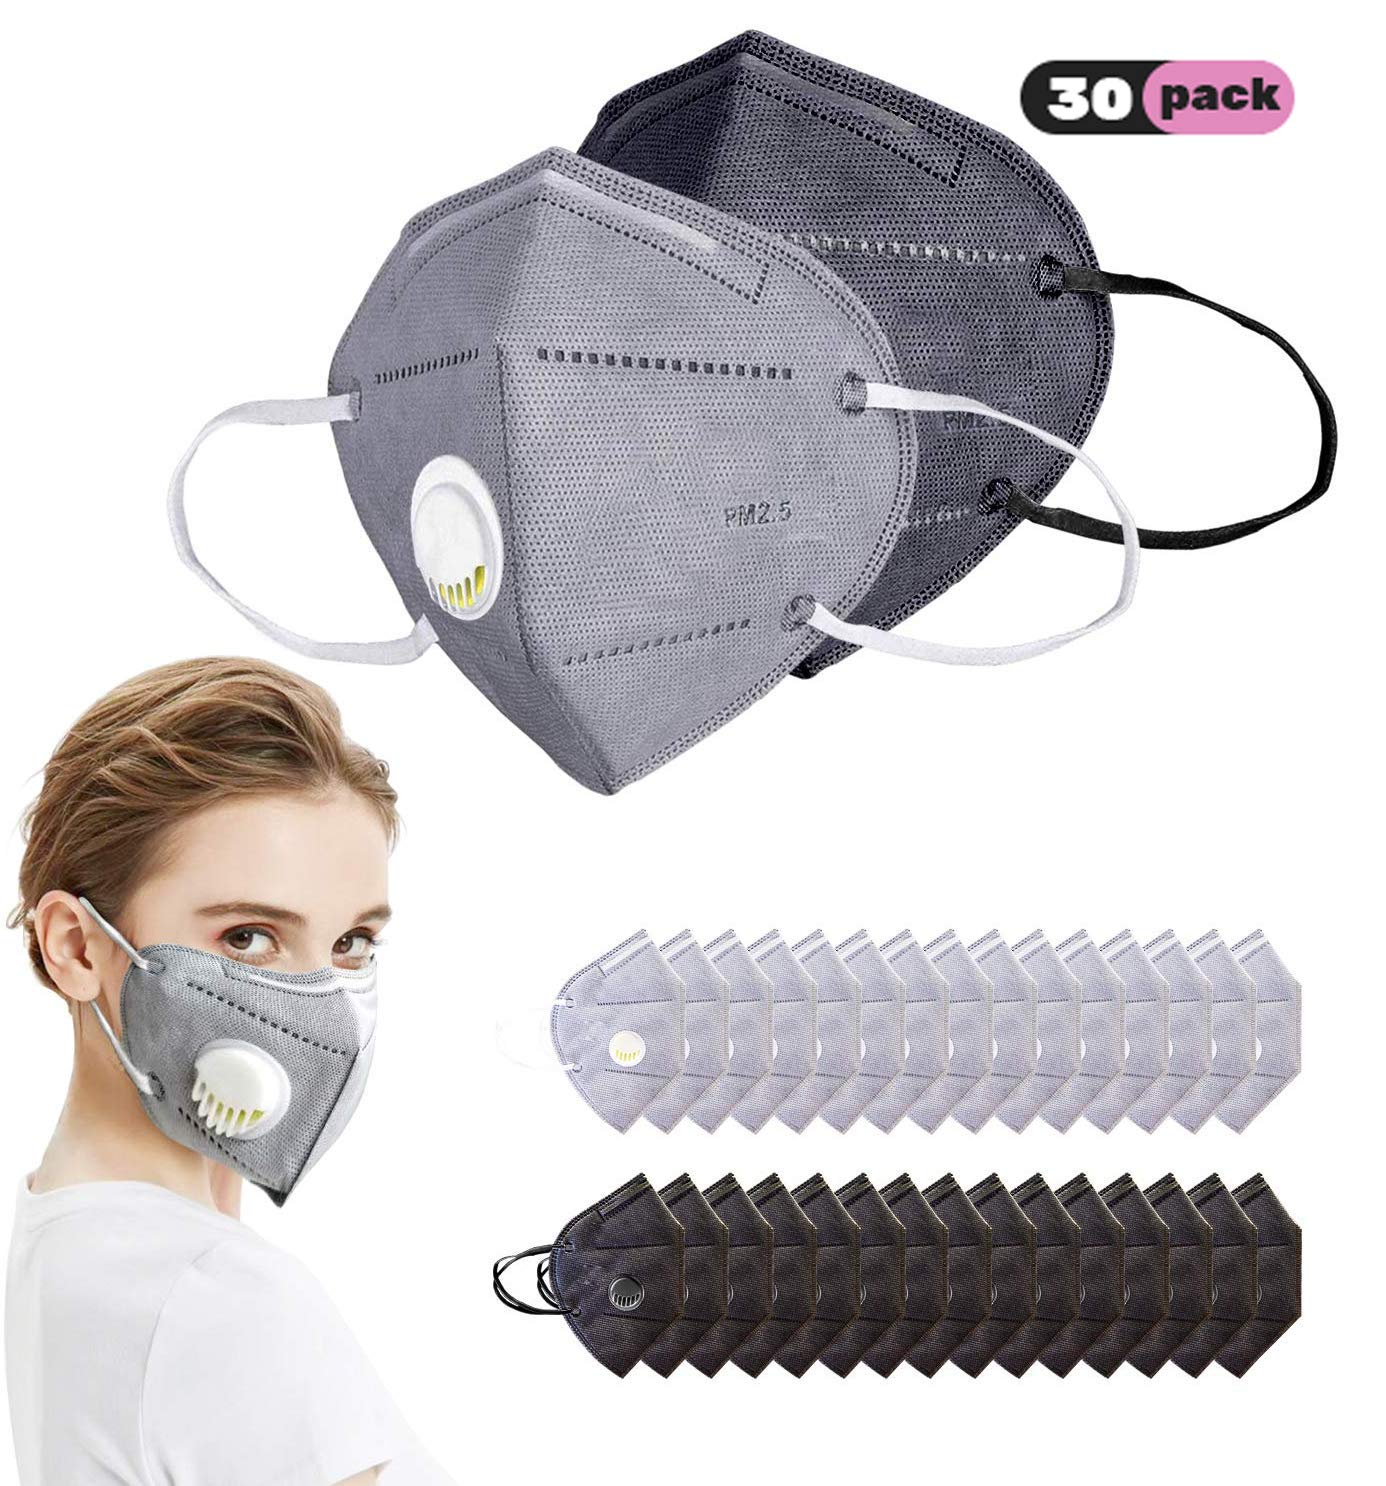 DELUX N95 Particulate Respirator Mask, 30 Pack Disposable Dust Mask with Exhalation Valve and 6-Layer Activated Carbon Air Filter for Construction, Home, Traffic Dust, Allergy, Mowing